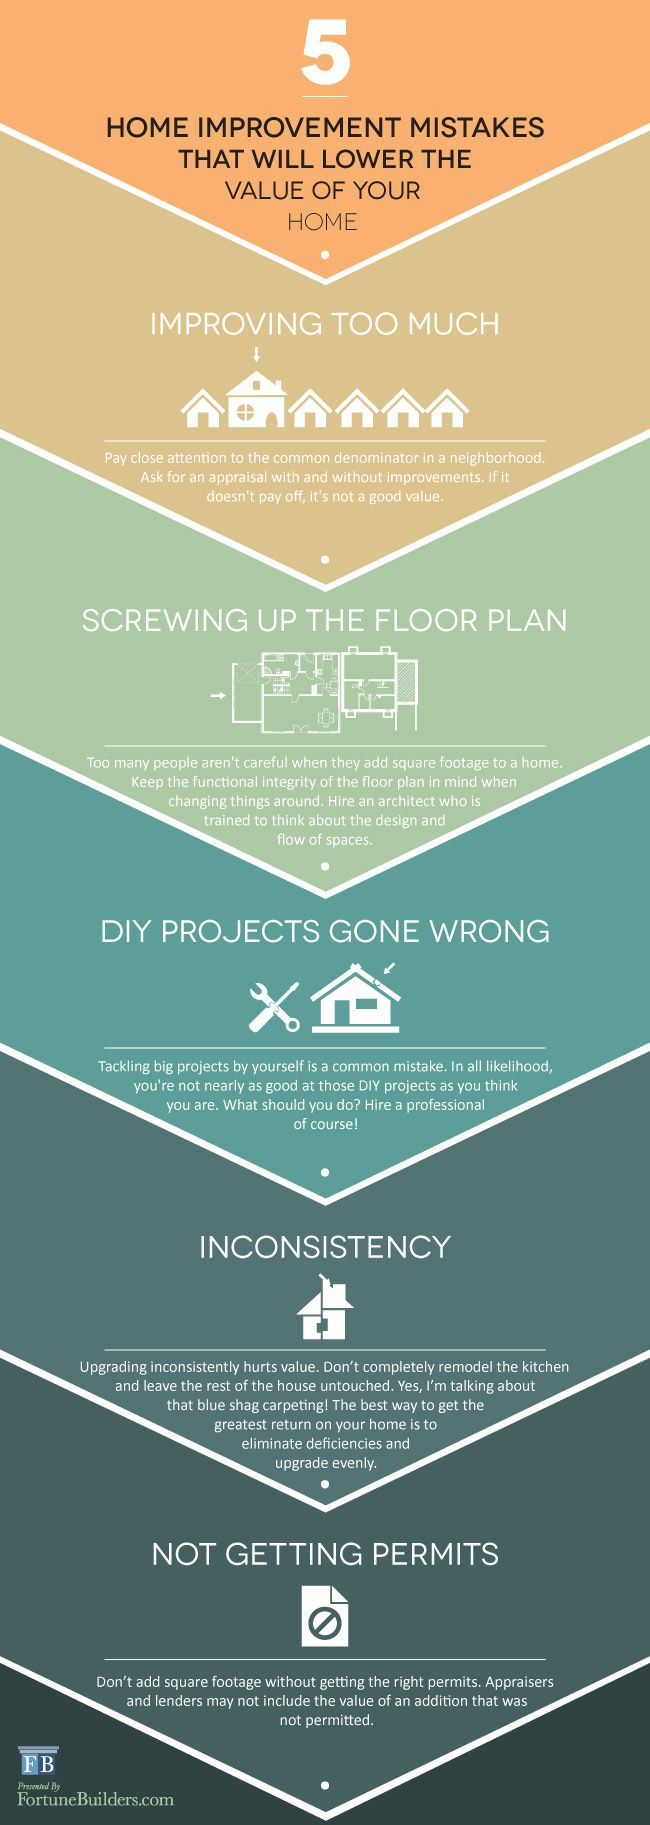 #Infographic: 5 Home Improvement Mistakes to Avoid -- Read more here: http://www.fortunebuilders.com/real-estate-articles/5-home-improvement-mistakes-avoid/ #RealEstate #Education